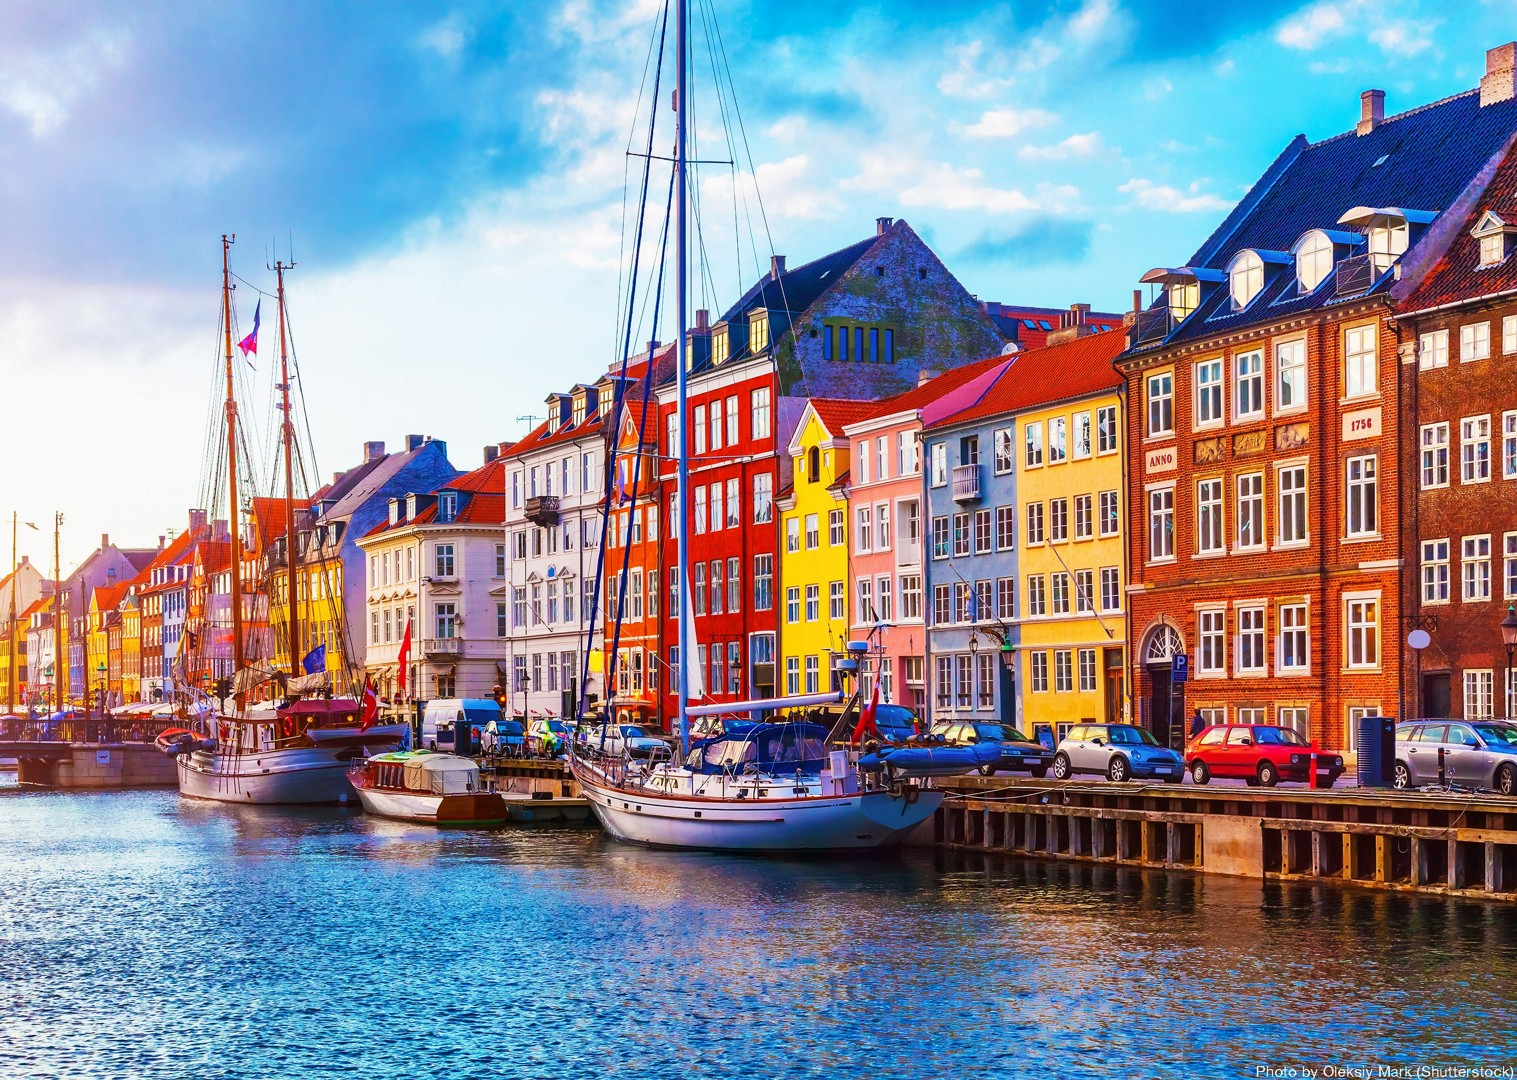 copenhagen-nyhavn-harbour-houses-family-biking-skedaddle.jpg - NEW! Denmark - Zooming Through Zealand - Family Cycling